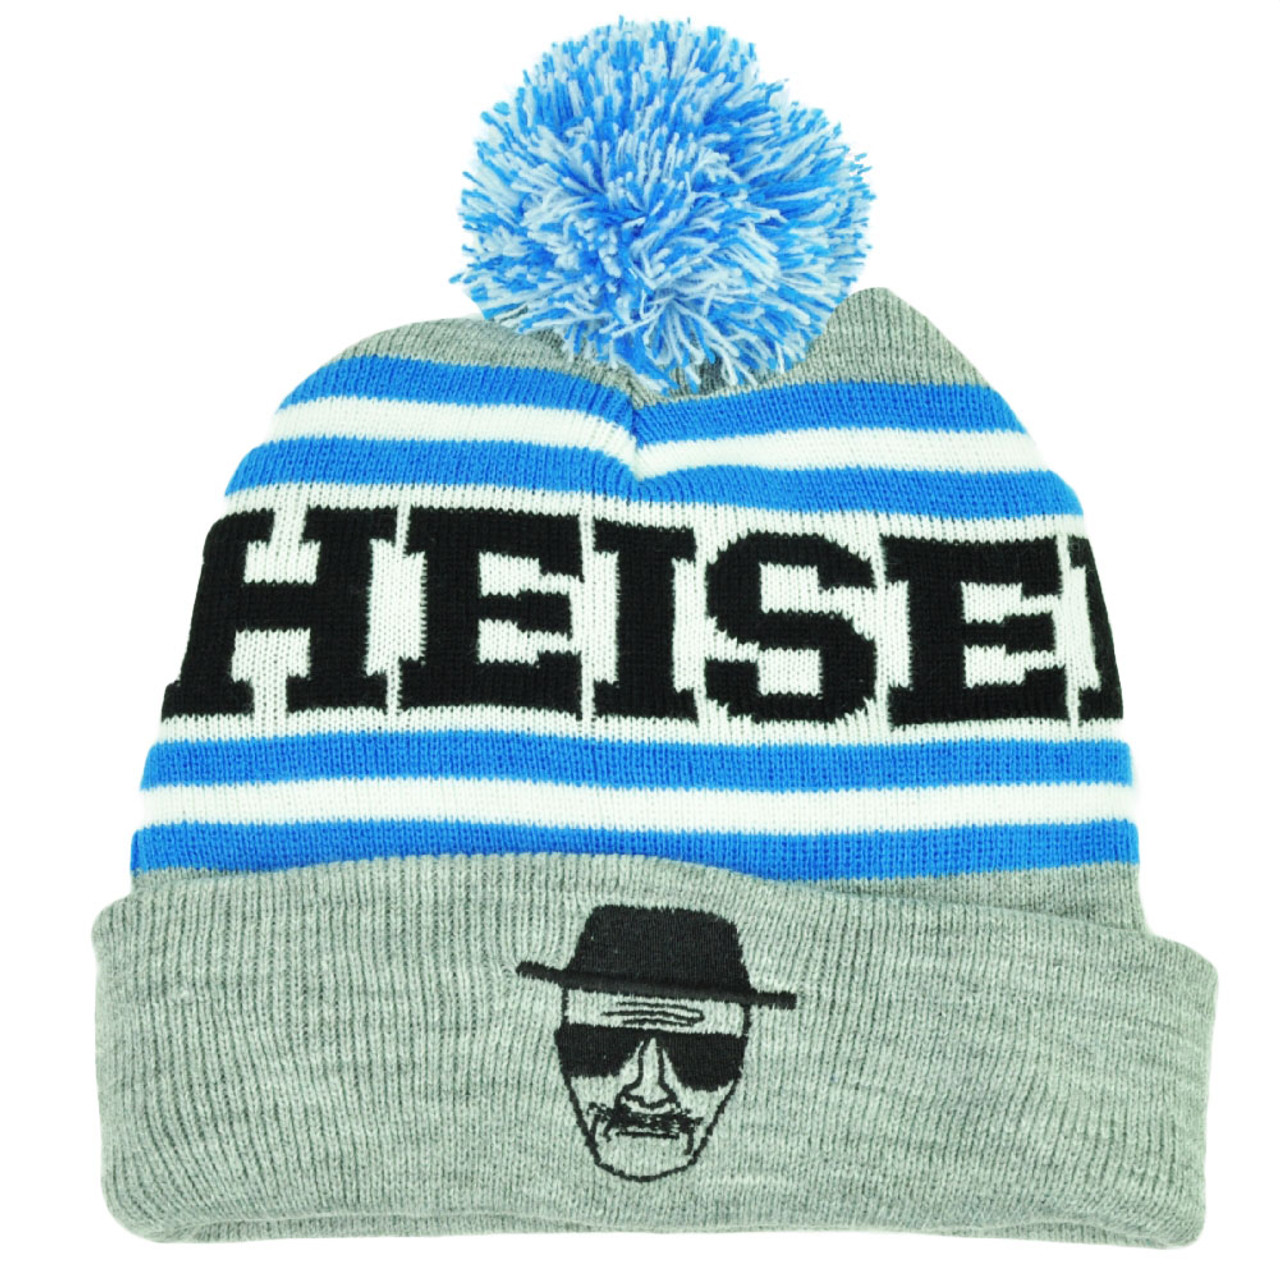 ec6d4bb73 Heisenberg Breaking Bad TV Series Knit Beanie Pom Pom Cuffed Toque Hat  Striped